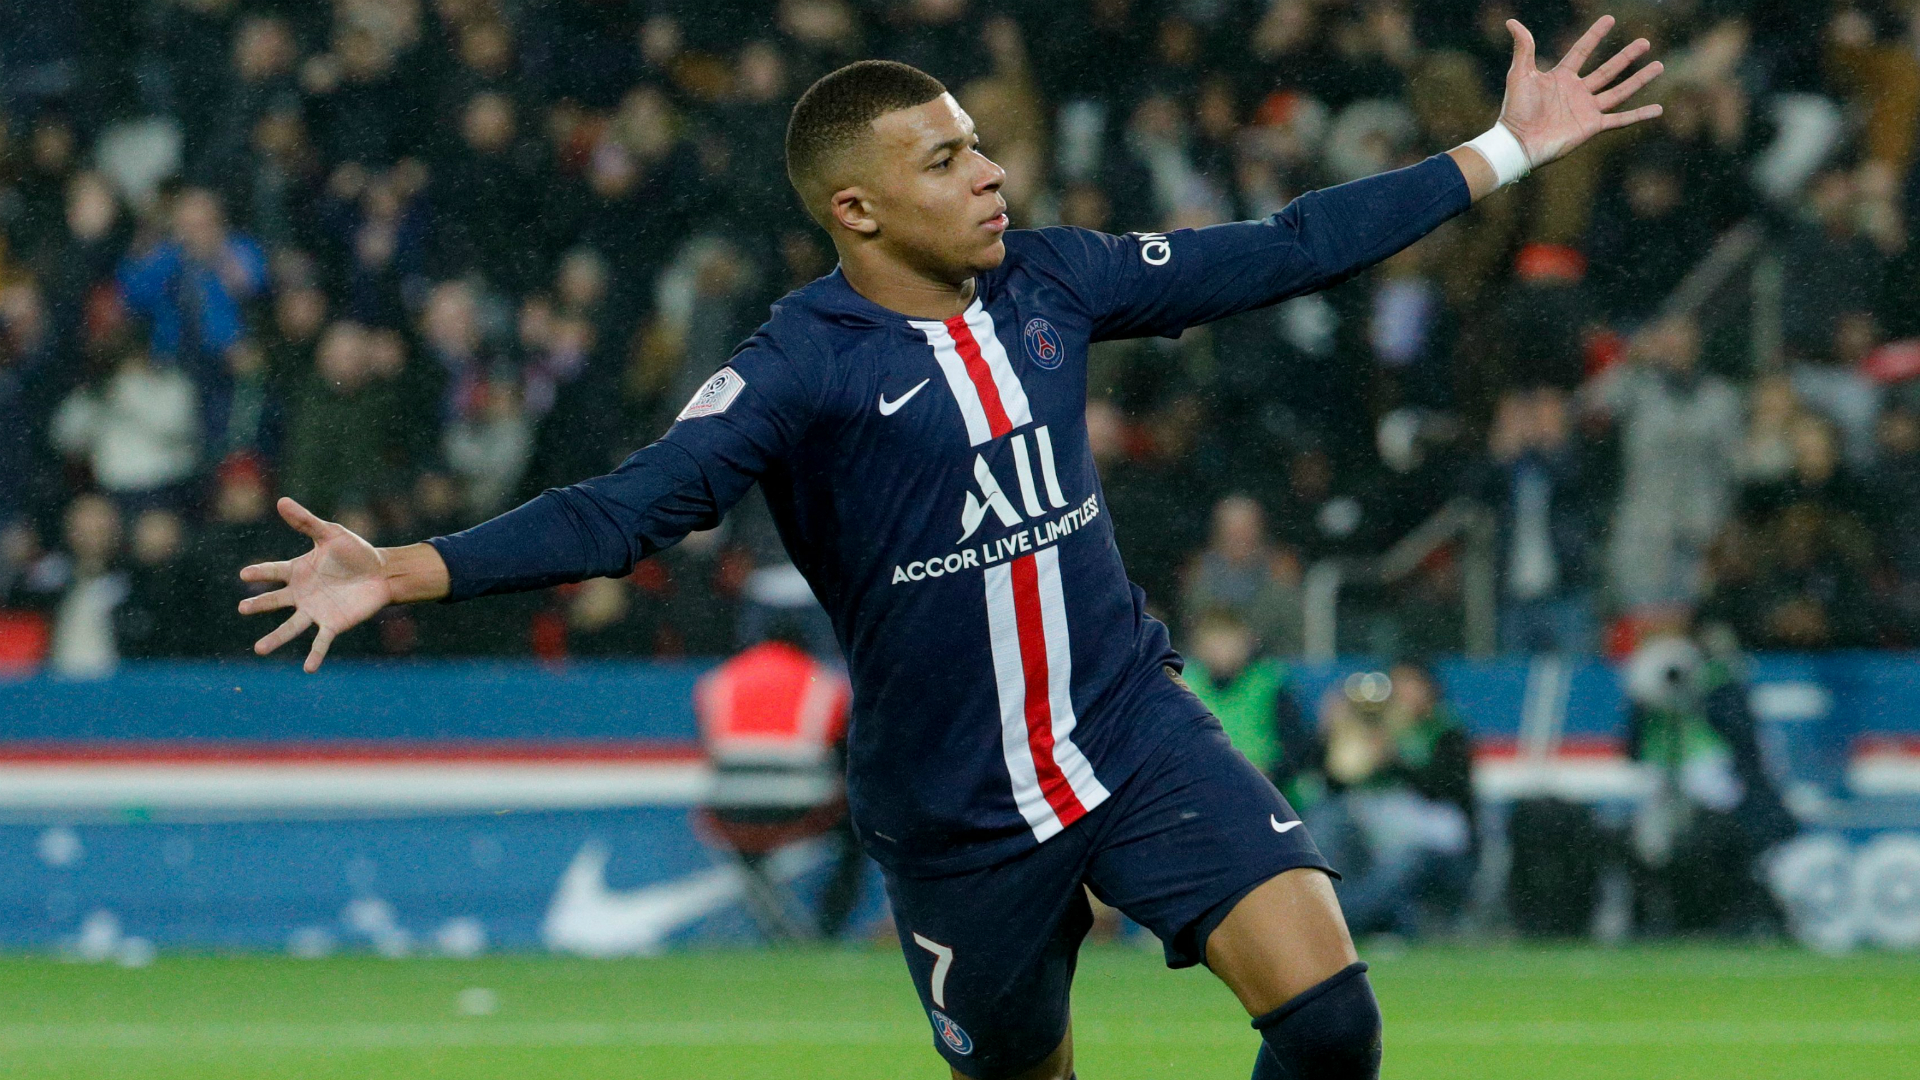 PSG soar to 94 points, AVB secures second for Marseille - Stats Perform AI completes the Ligue 1 season